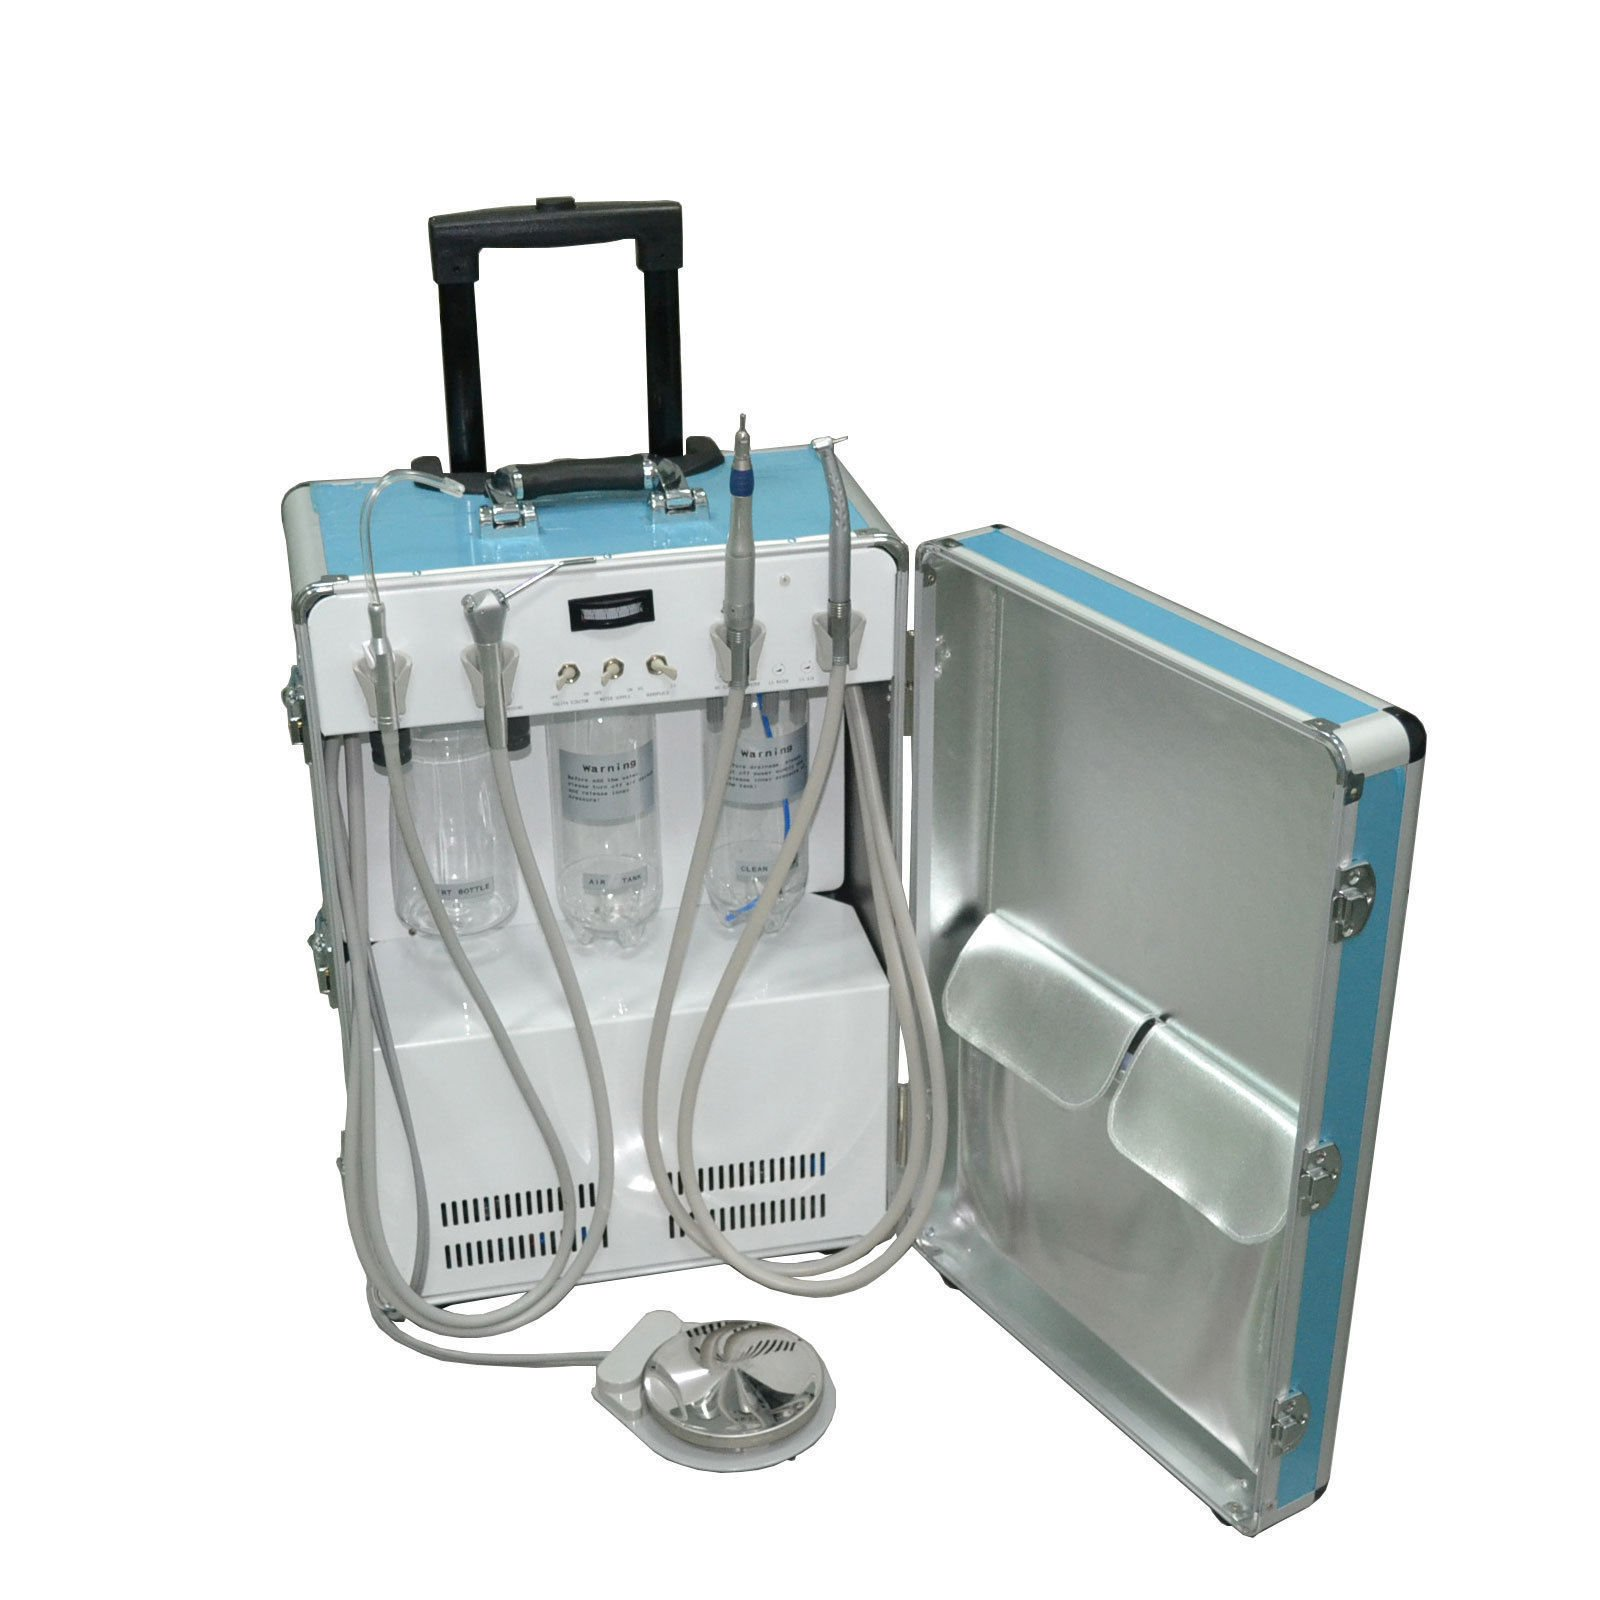 Greeloy Portable Delivery Unit 4H All In One Set For Lab Use